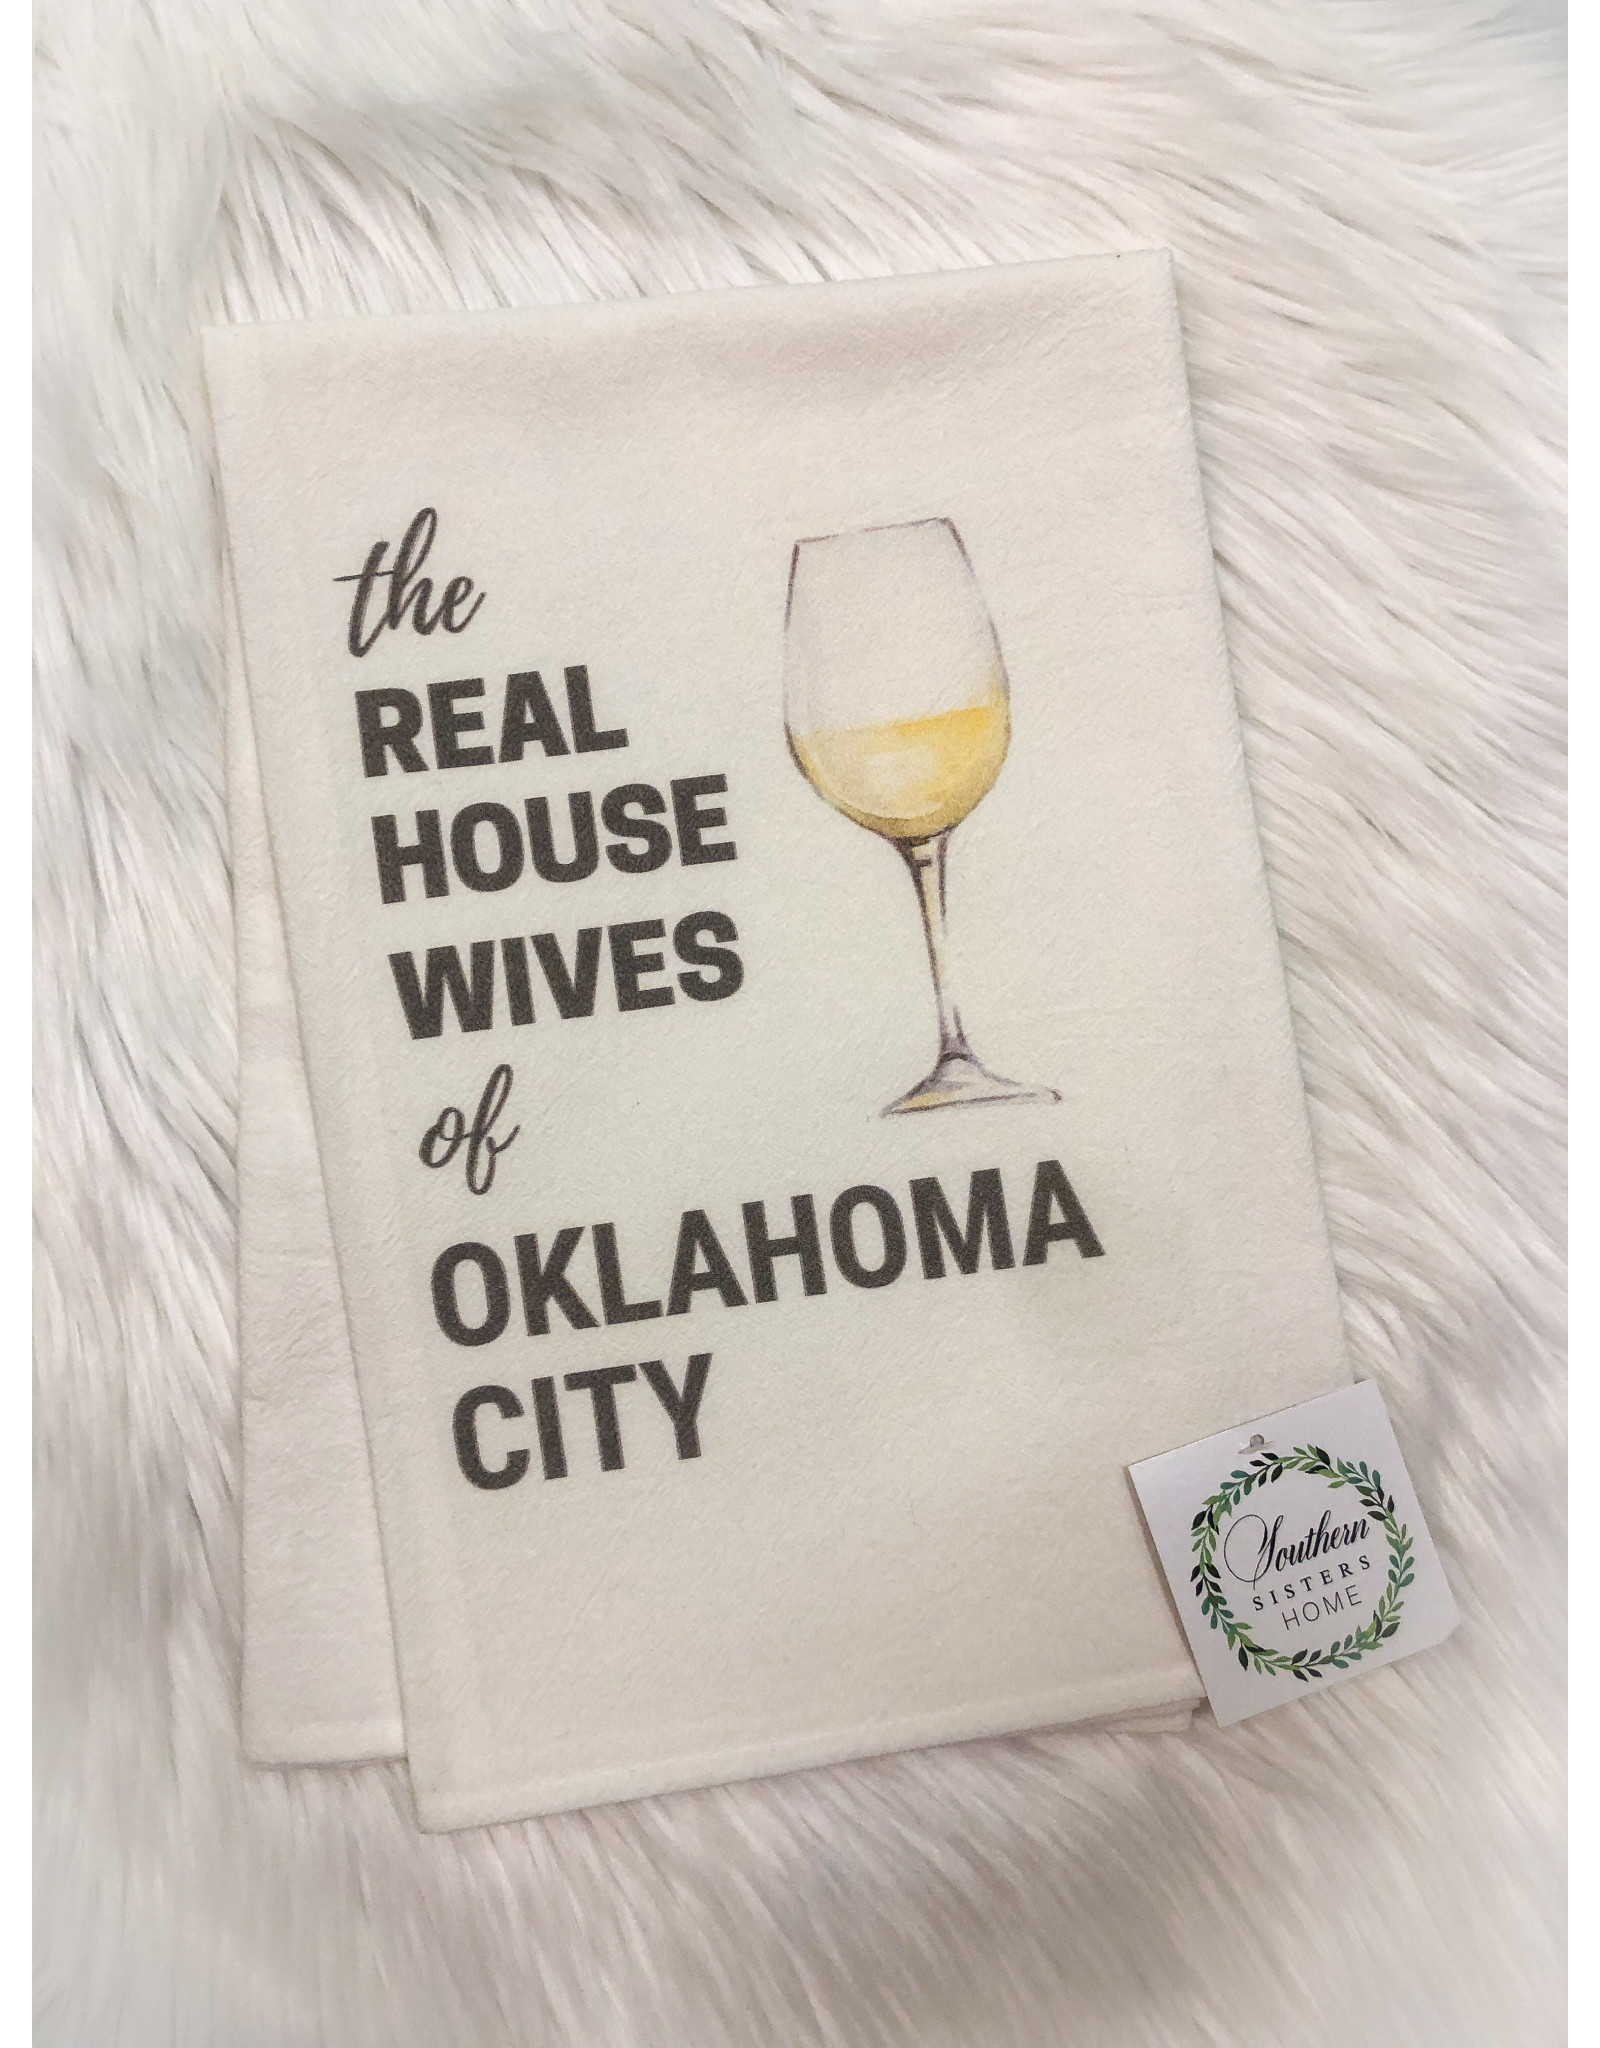 The Ritzy Gypsy THE REAL HOUSEWIVES COCKTAIL Towel (Oklahoma City)